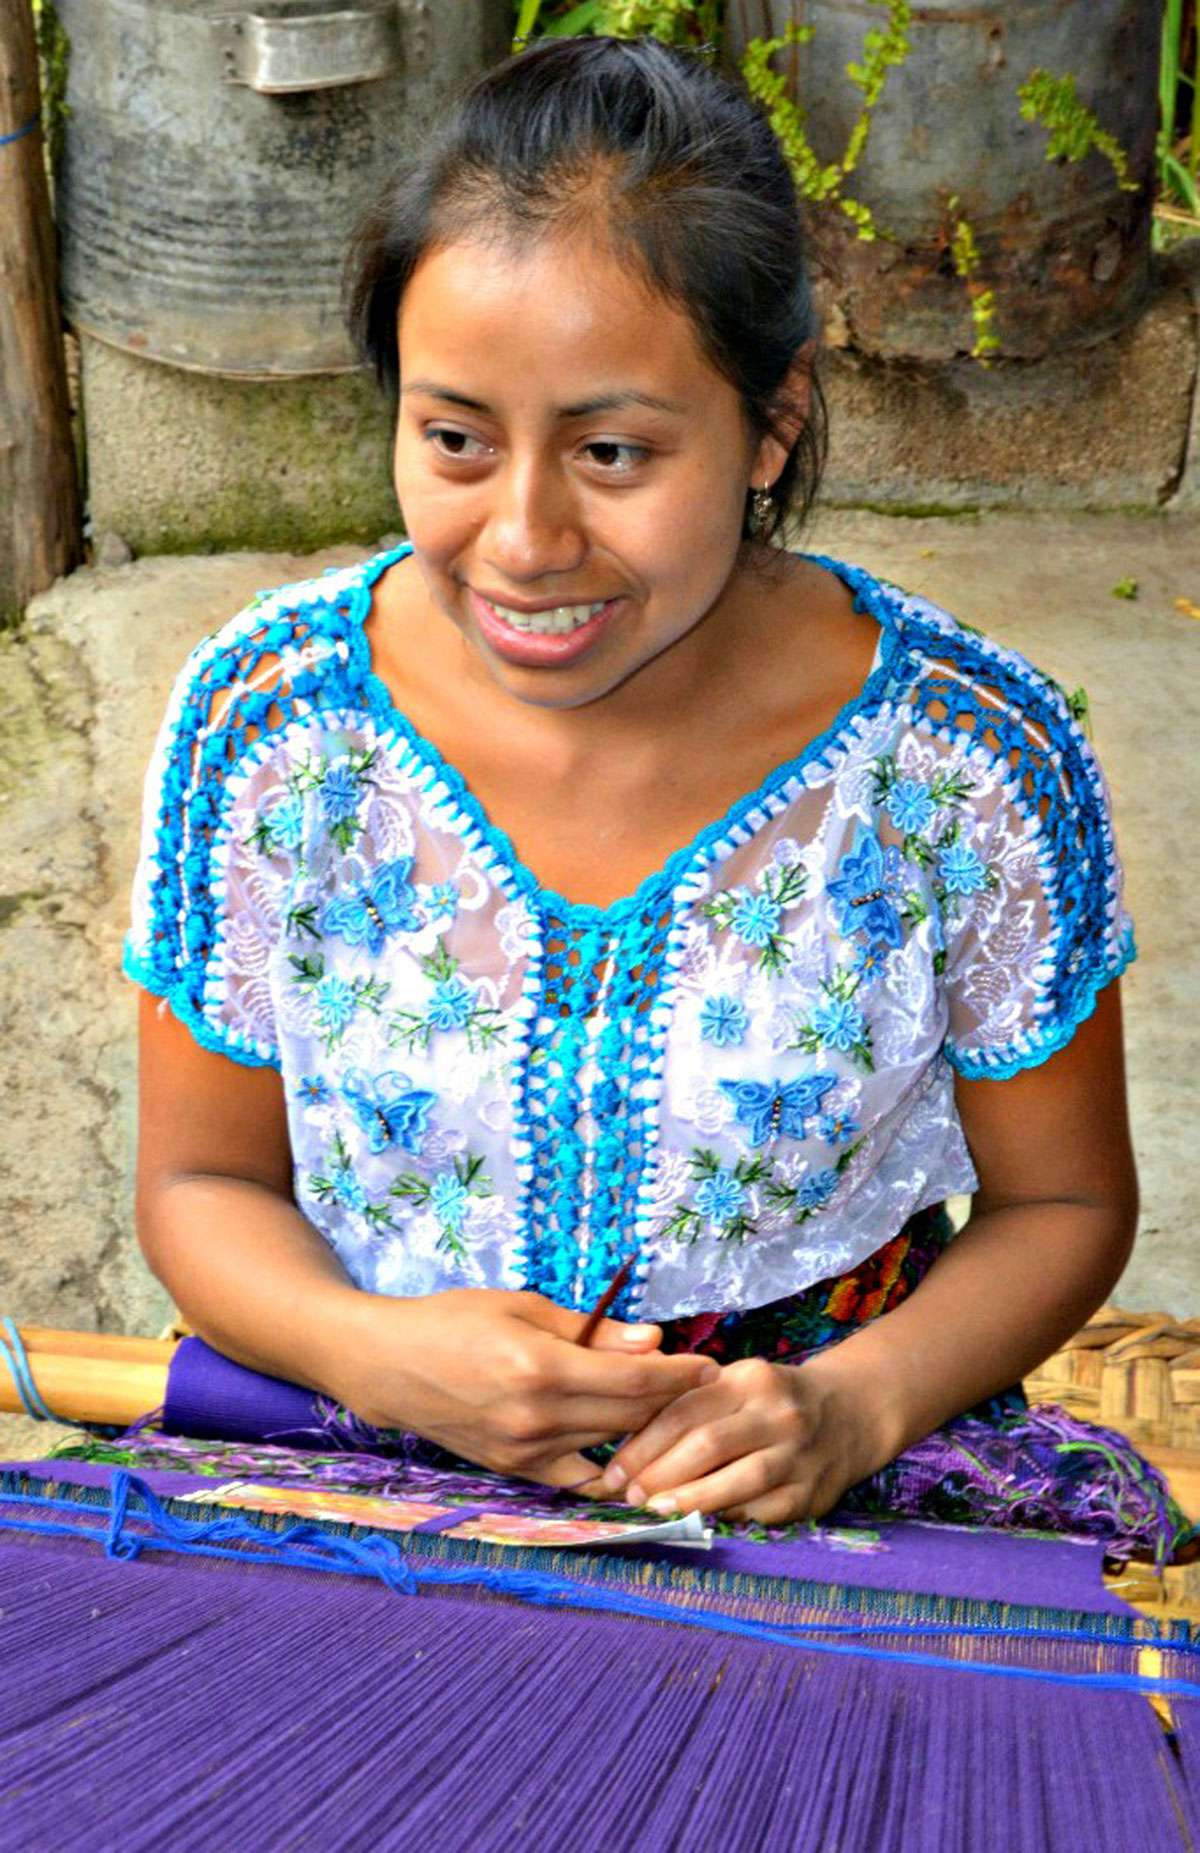 Sandy demonstrating the back strap loom and the traditional way of hand weaving garments. Photo: Meg Pier